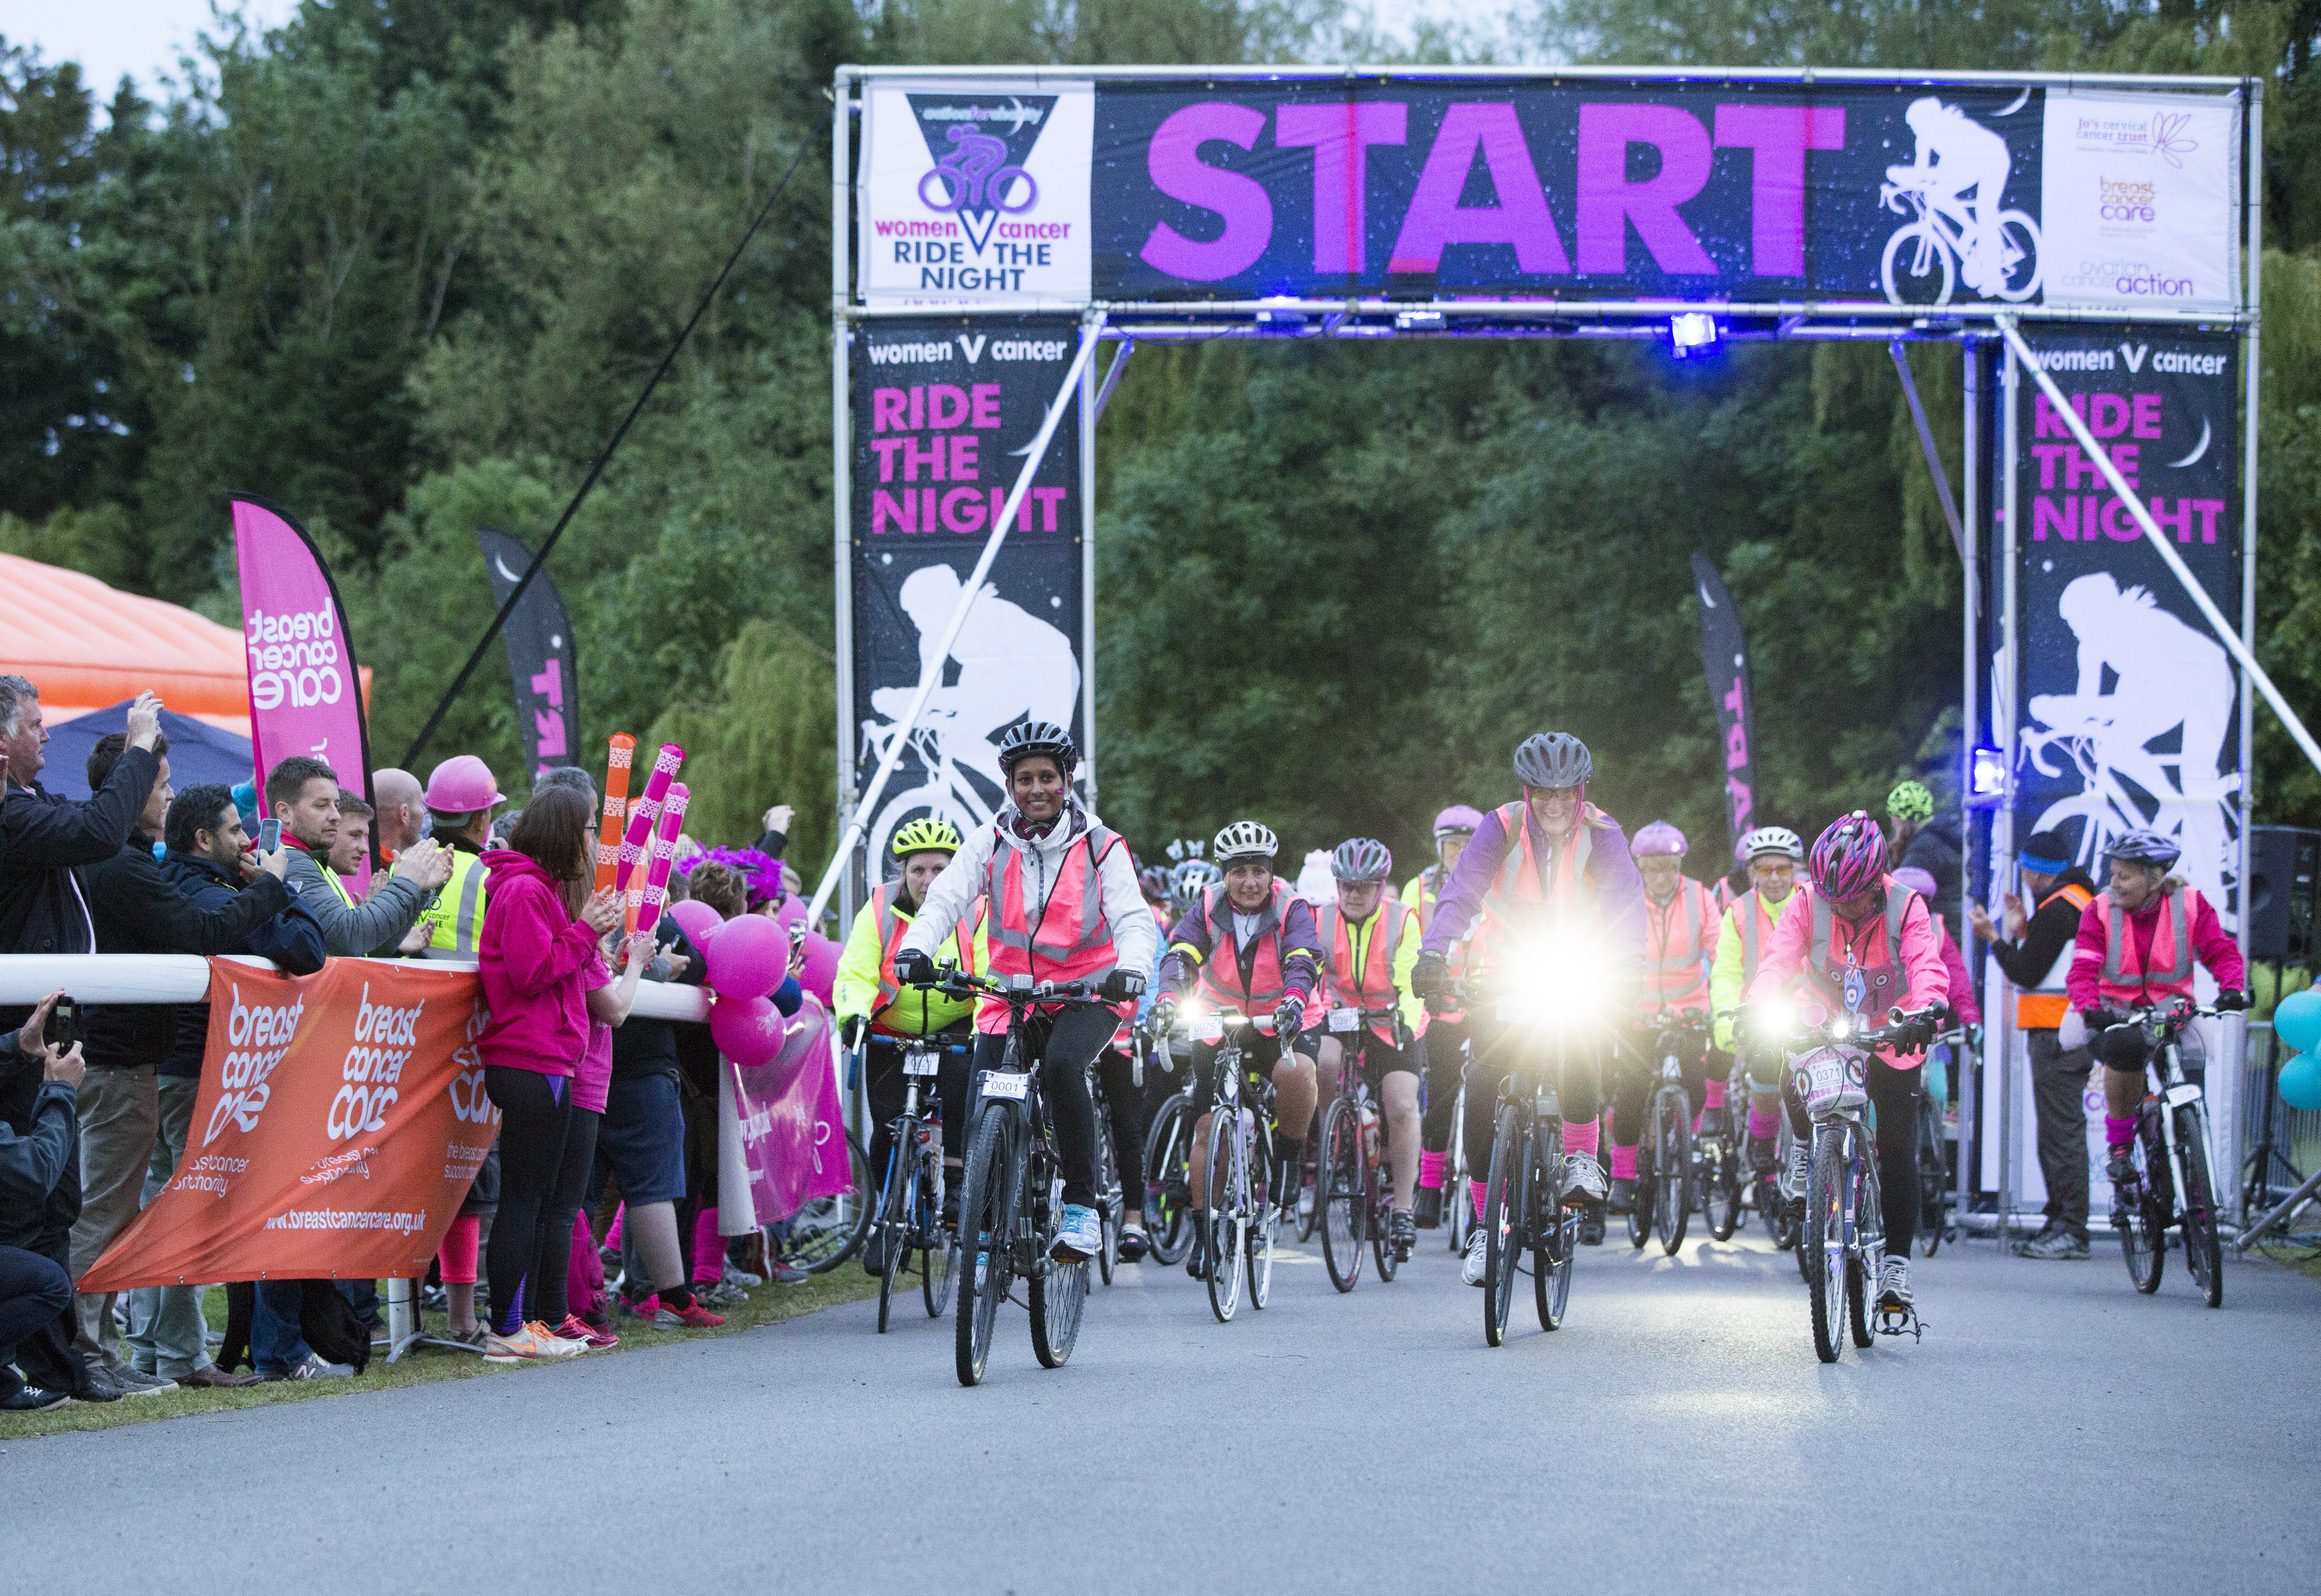 Women V Cancer Ride The Night Start